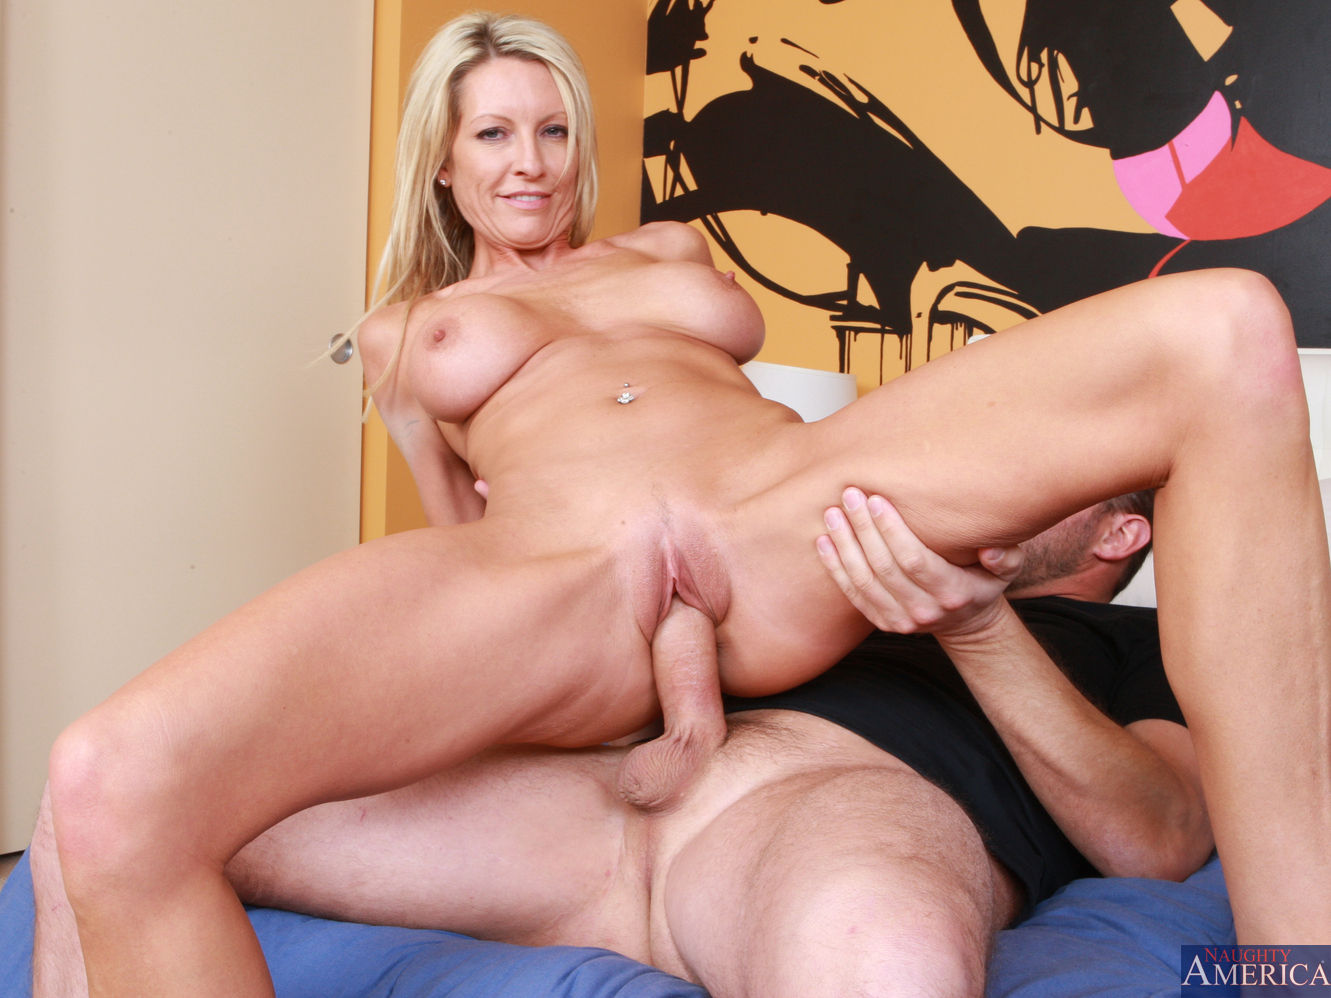 Mom son fuck porn elf sex video  nudes vids